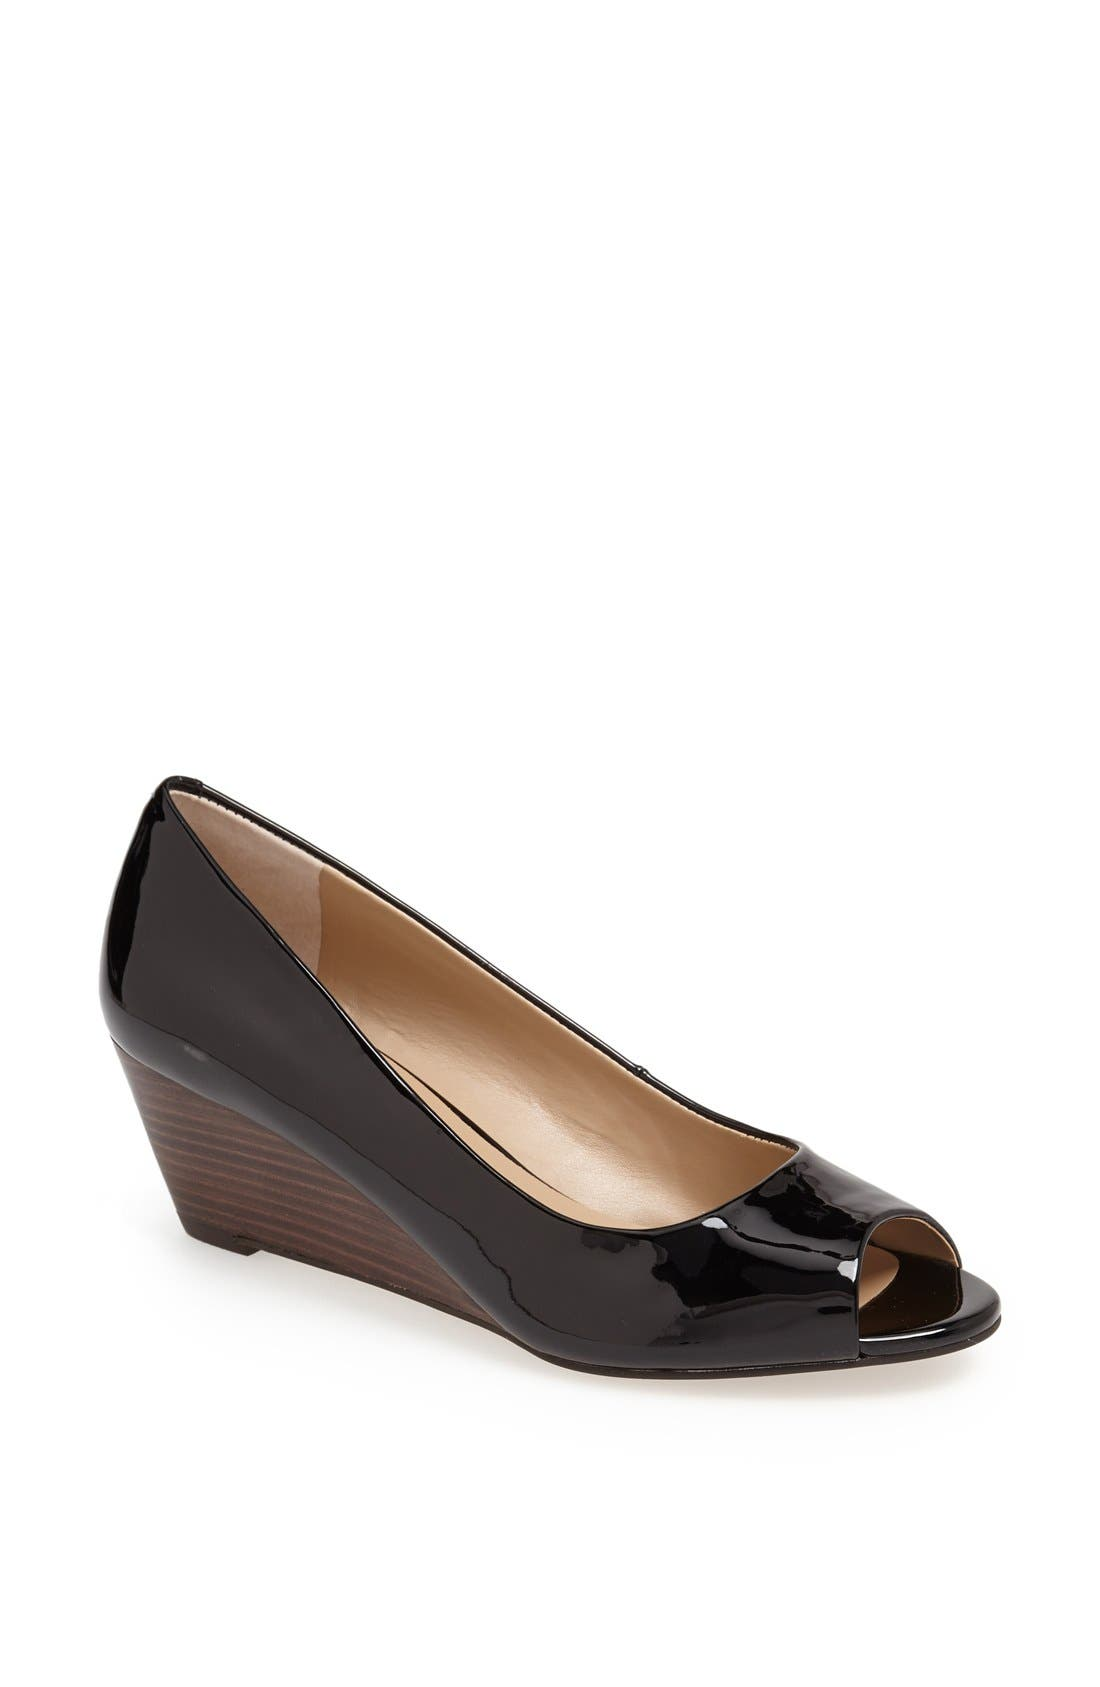 Alternate Image 1 Selected - Sole Society 'Laurie' Wedge (Women)